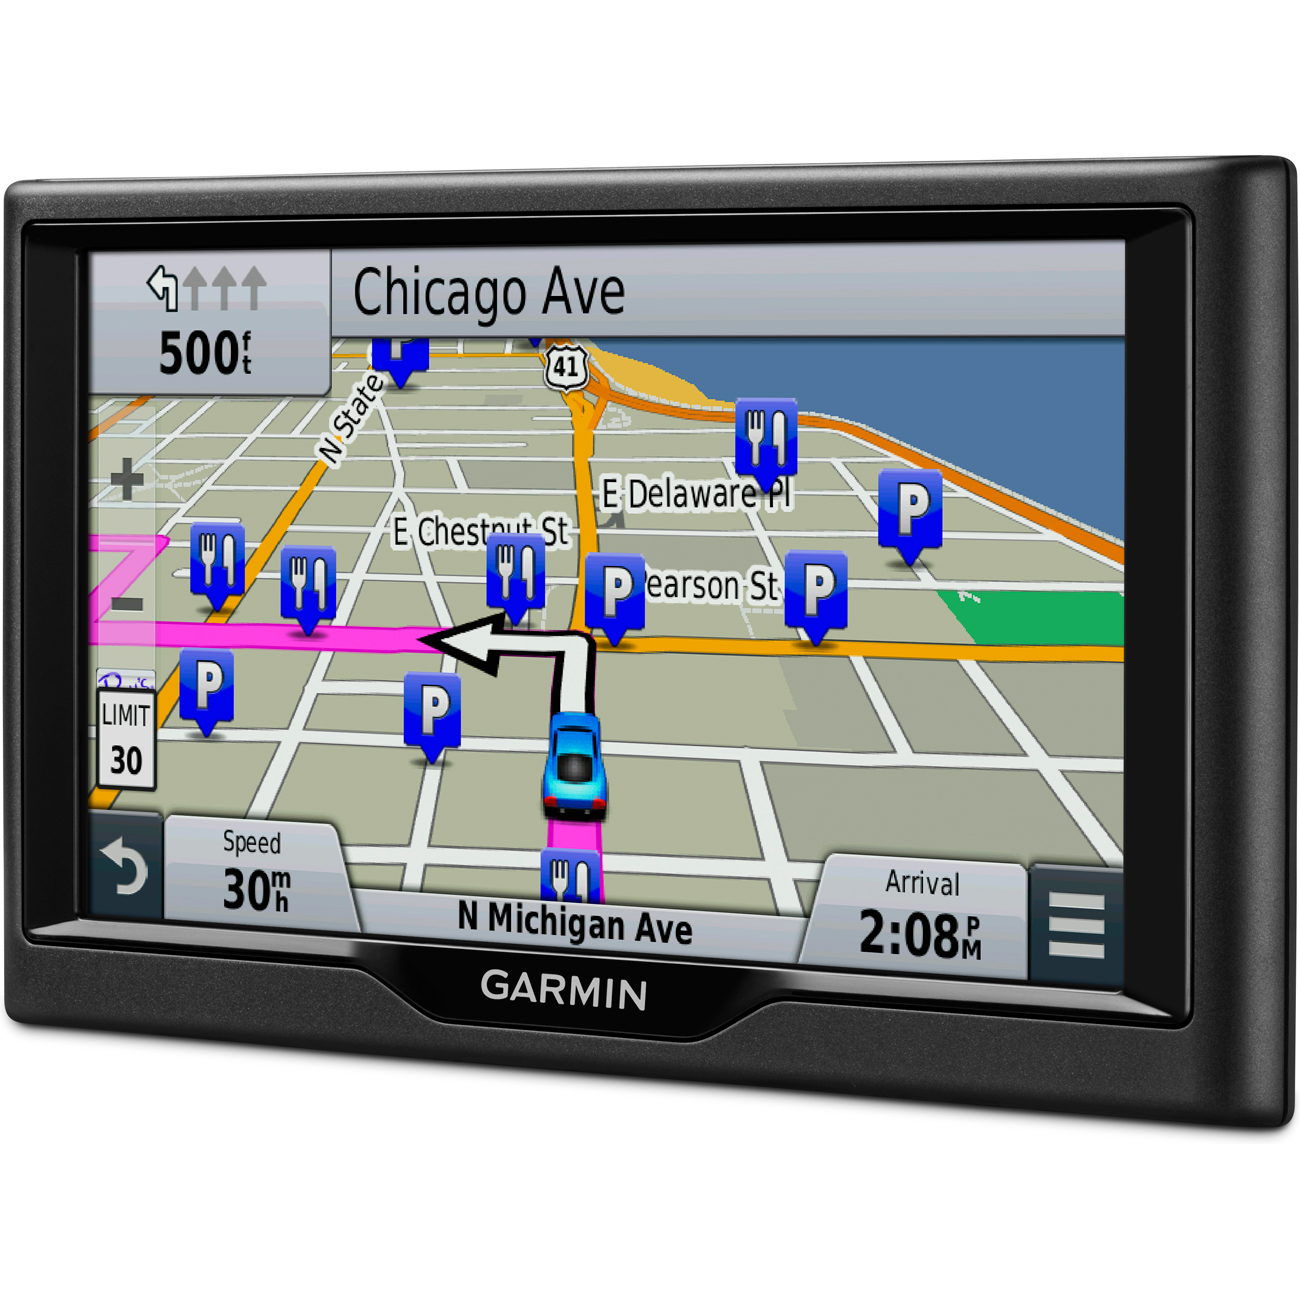 Garmin Nuvi LM Essential Series GPS Navigation - Garmin map indonesia us